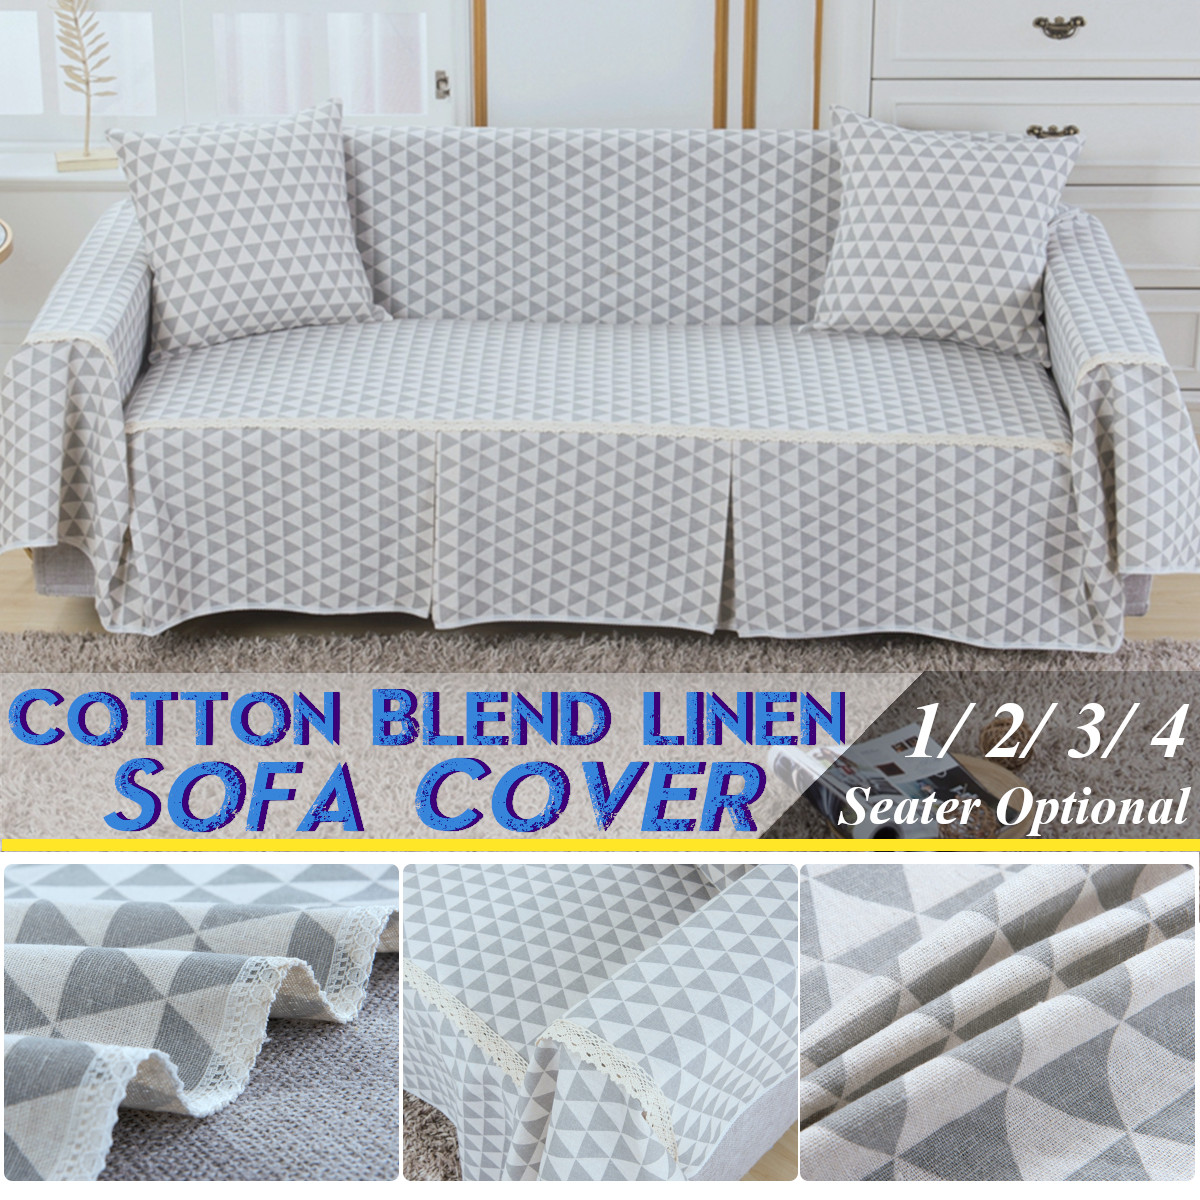 Thicken Cotton Blend Sofa Cover Couch Slipcover 1 4 Seater Chair Covers Protector For Living Room